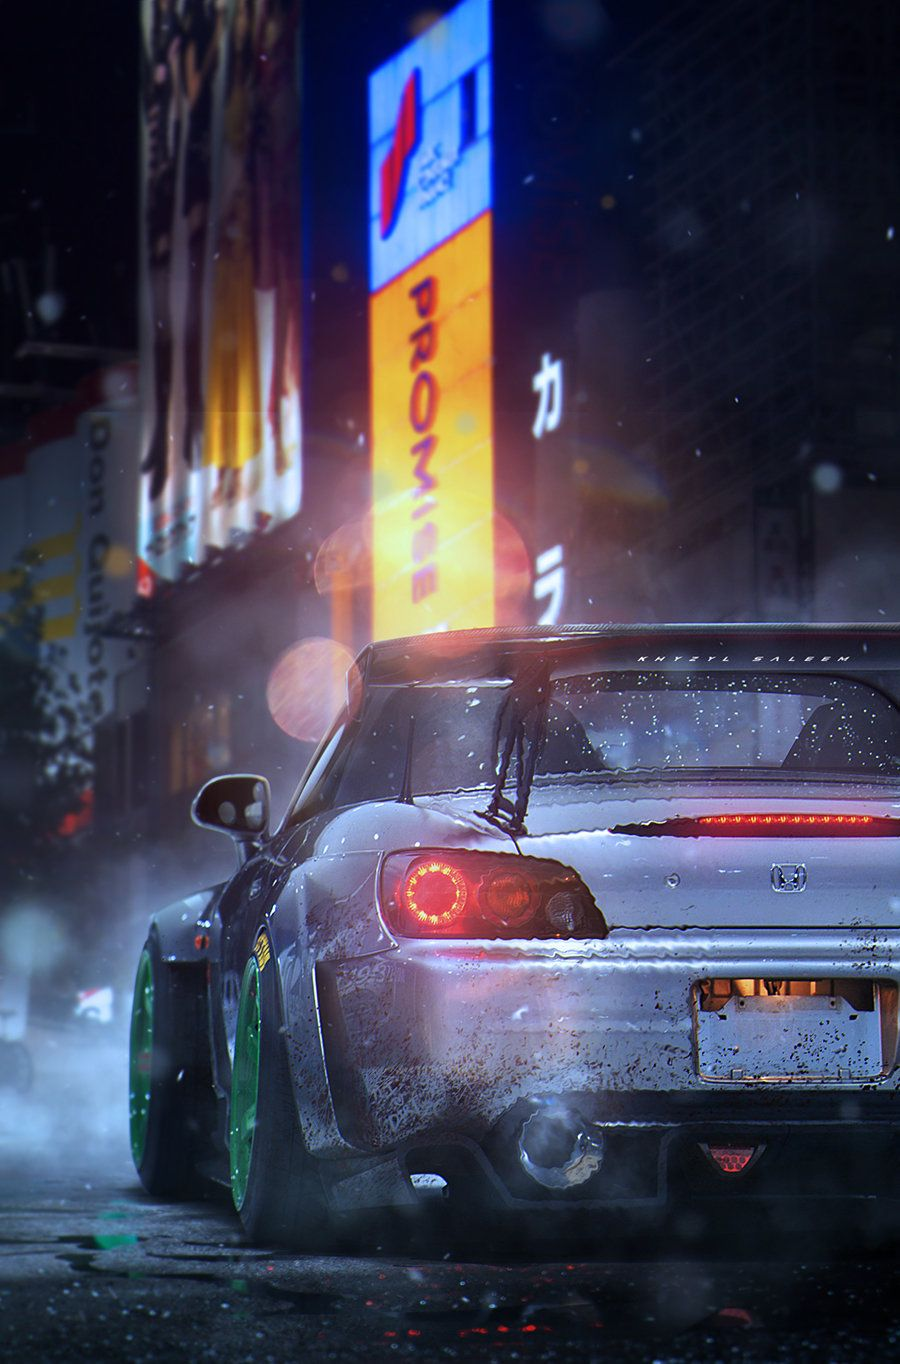 Artstation Honda S2000 Wallpaper Khyzyl Saleem Jdm Wallpaper Honda S2000 Car Wallpapers